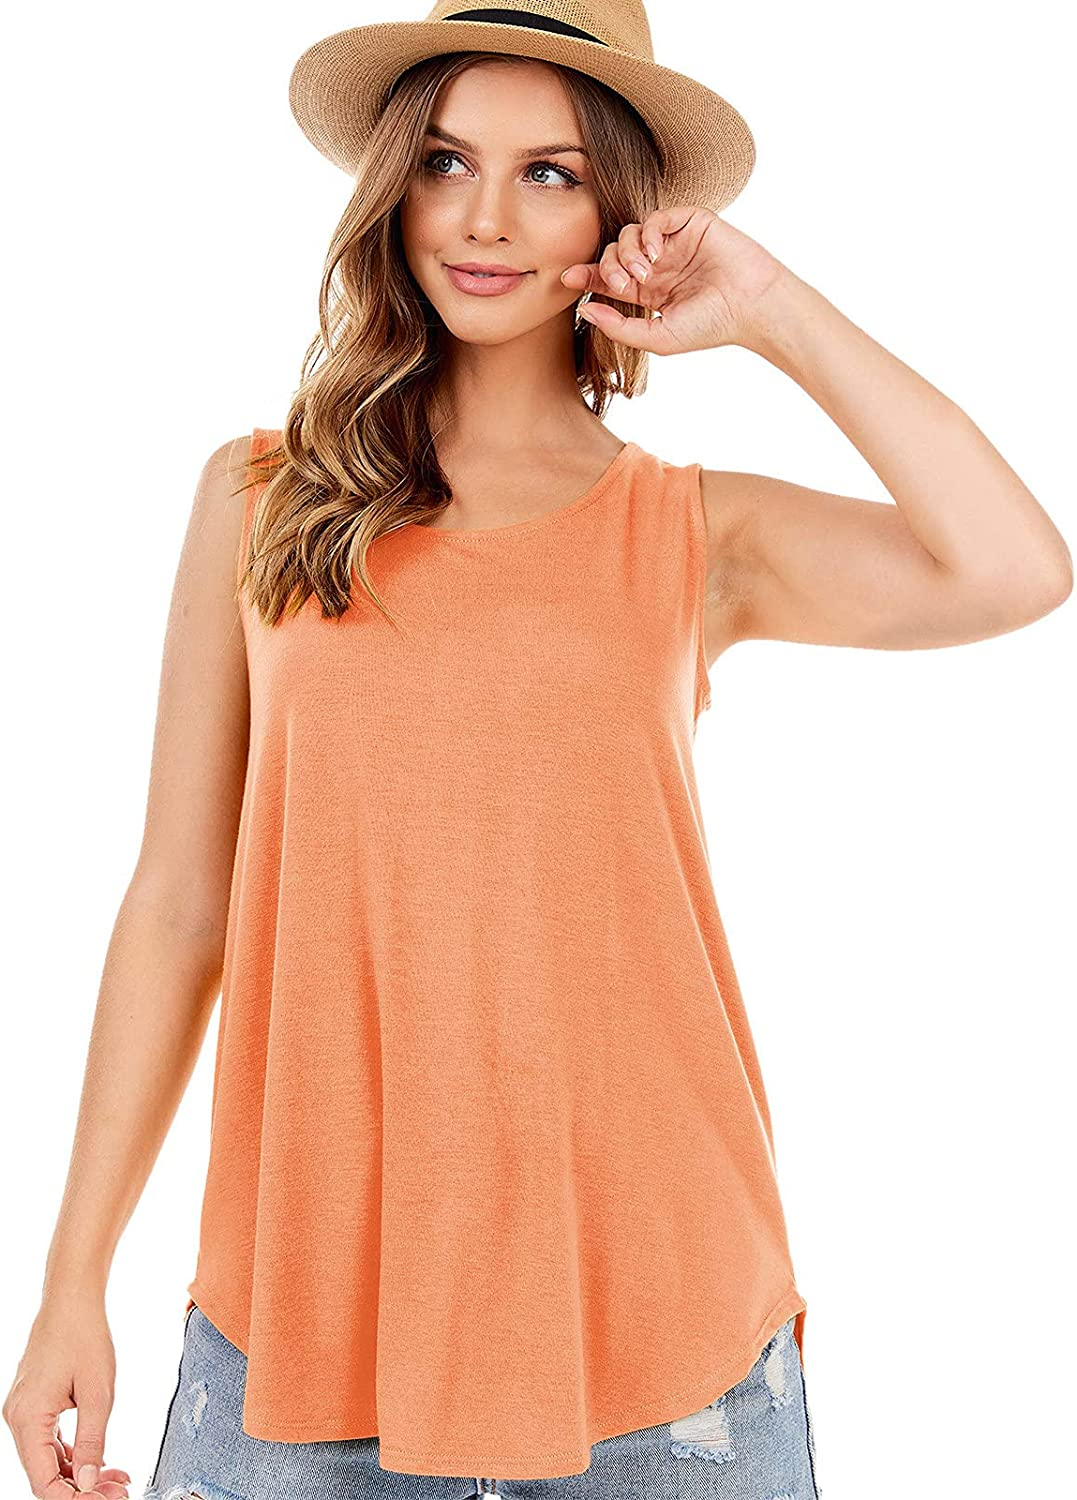 Aukbays Womens Summer T Shirts Short Sleeve Round Neck Solid Color Tunic Blouse Strappy Cold Shoulder Tops Shirt